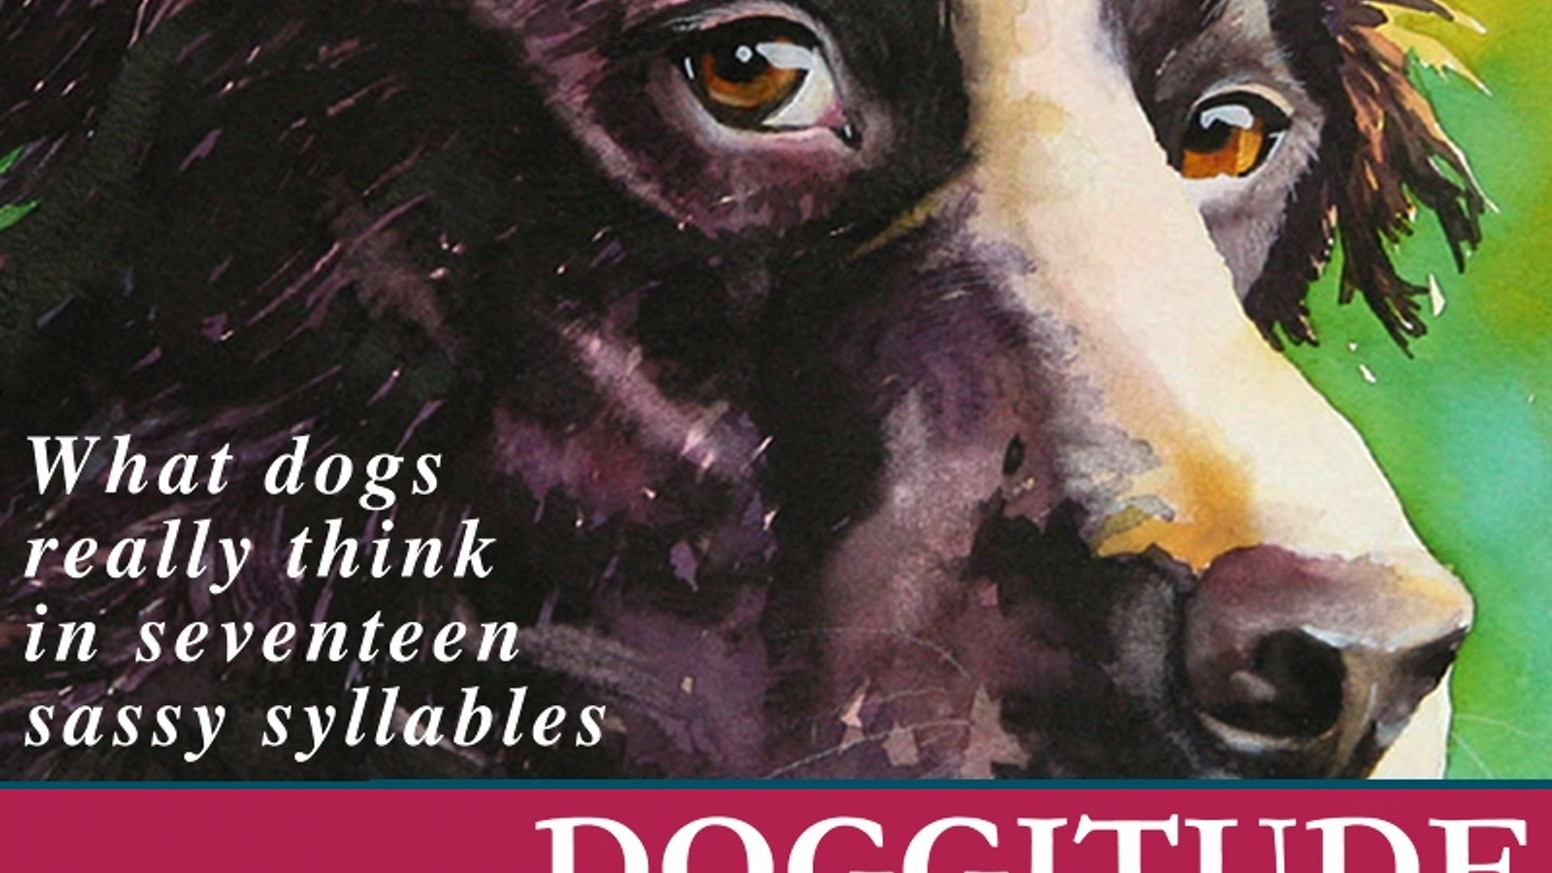 Doggitude: A Light-Hearted Book for Dog Lovers by Carole Pivarnik